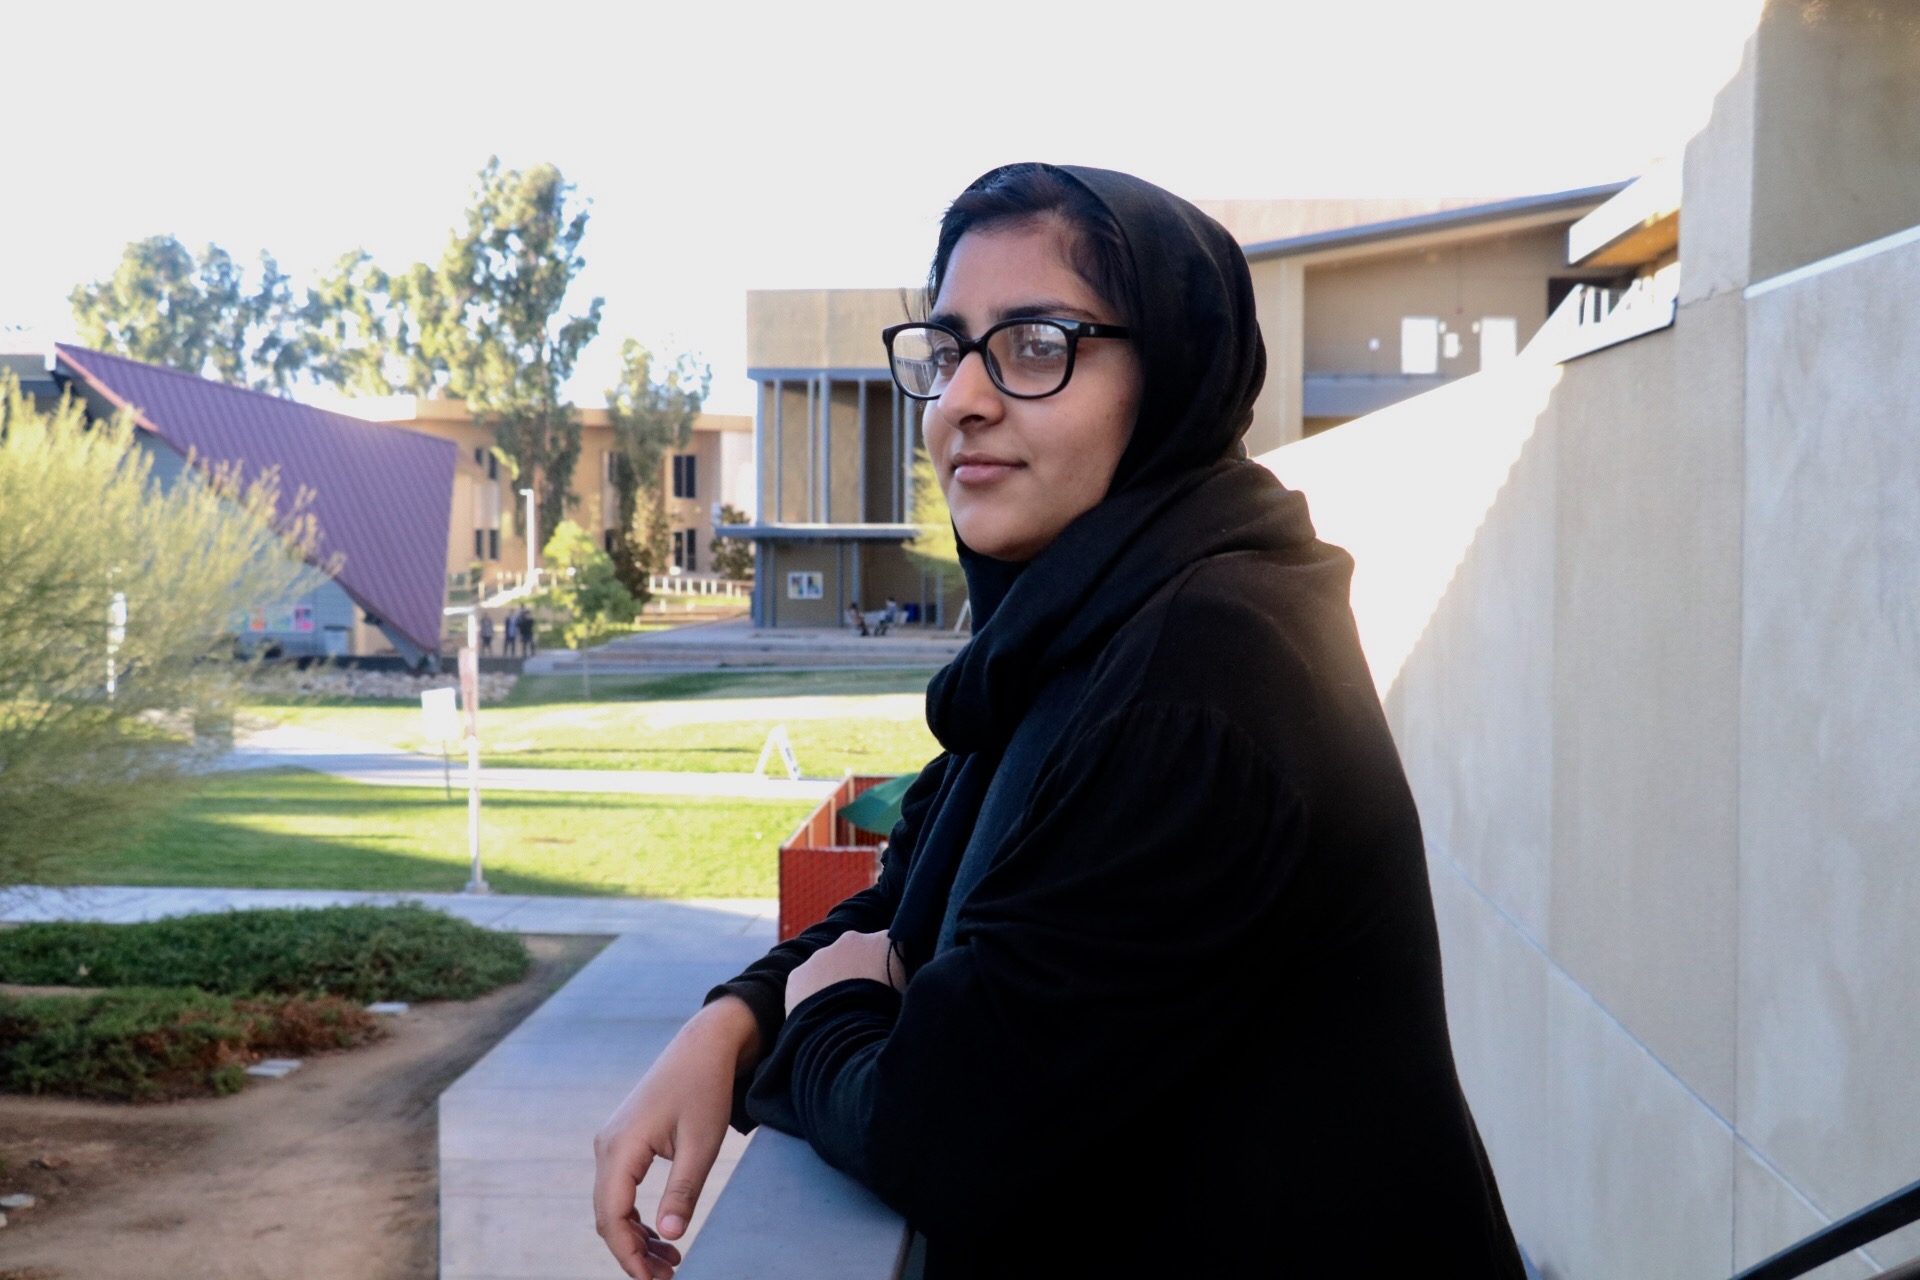 Photo/Anthony Victoria: San Bernardino Valley College student Sadia Khan, 21, said she and her family experienced discrimination for being Muslim in the wake of the terrorist attack that killed 14 people at the Inland Regional Center on December 2, 2015.